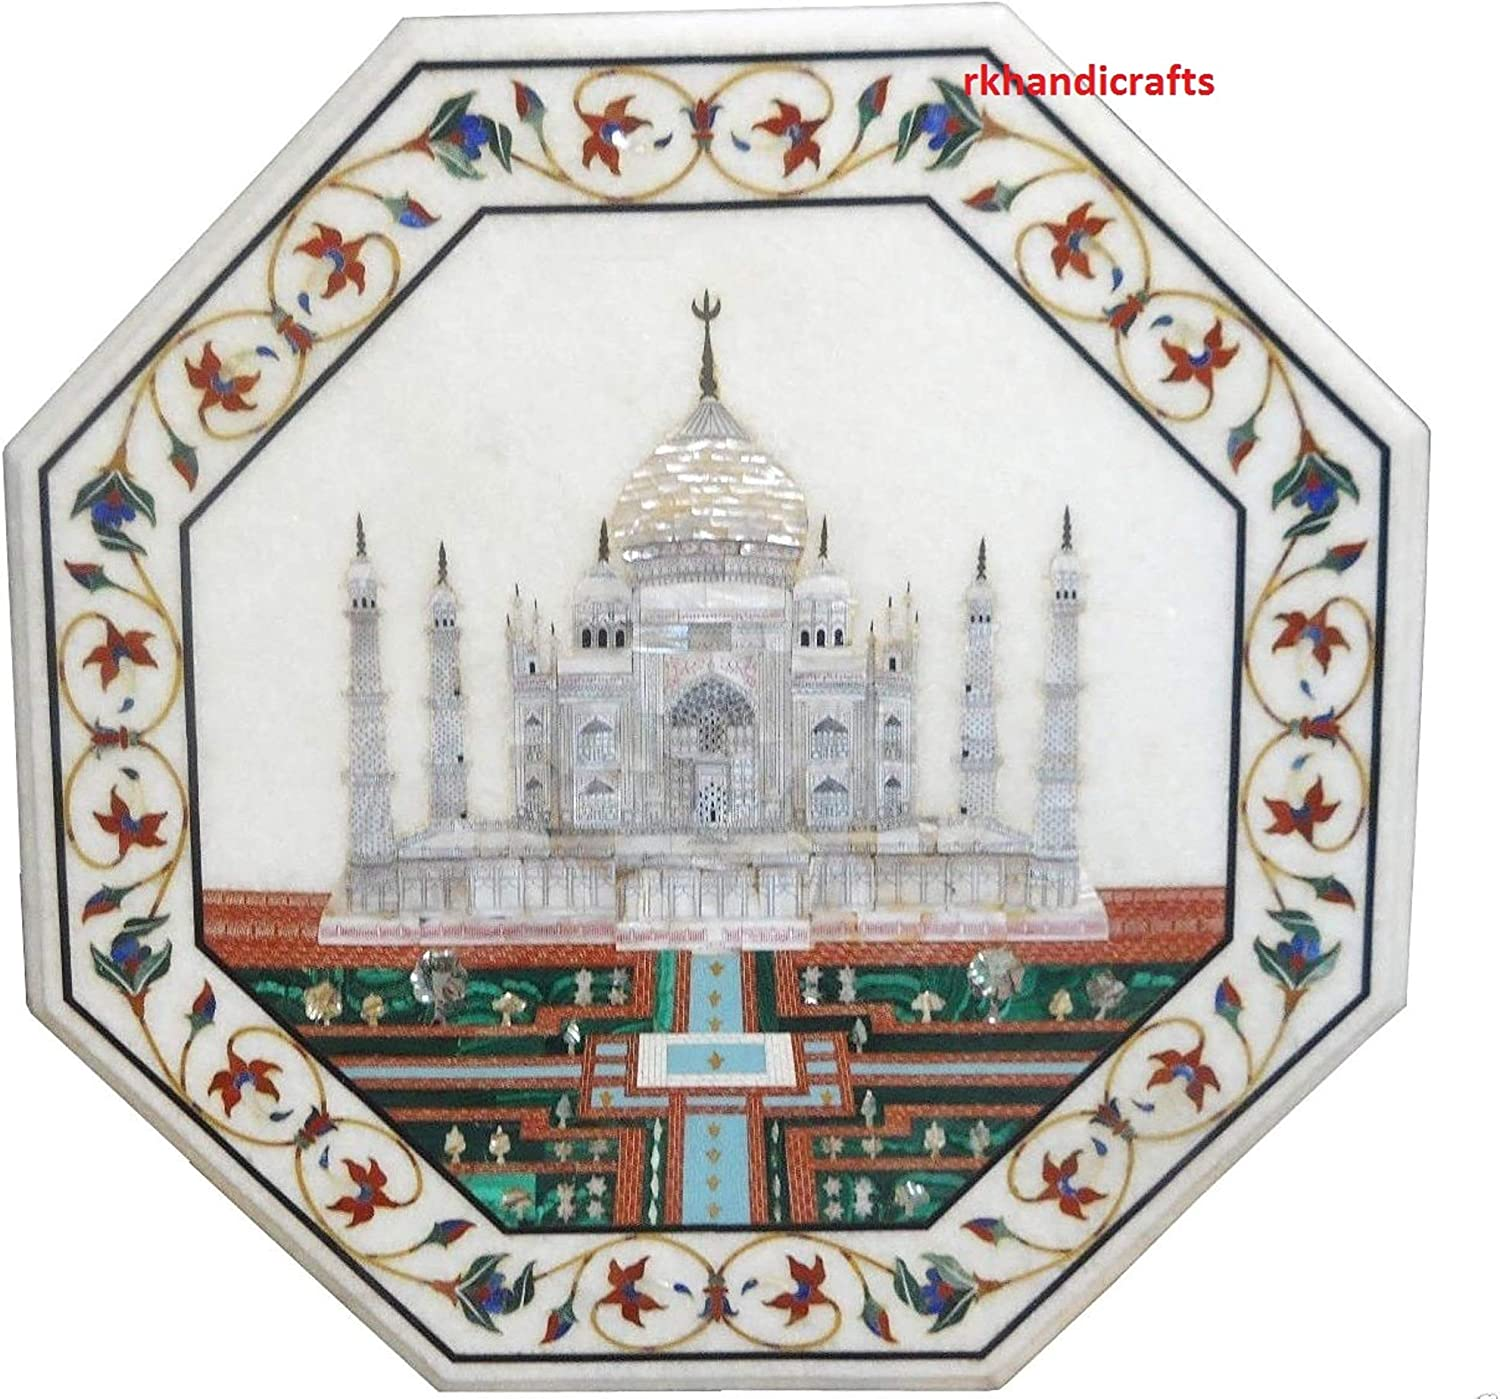 15 Inches Marble Patio Side Table Top Taj Mahal Replica Inlaid Handmade from India 81TwpqH8BeLSL1500_